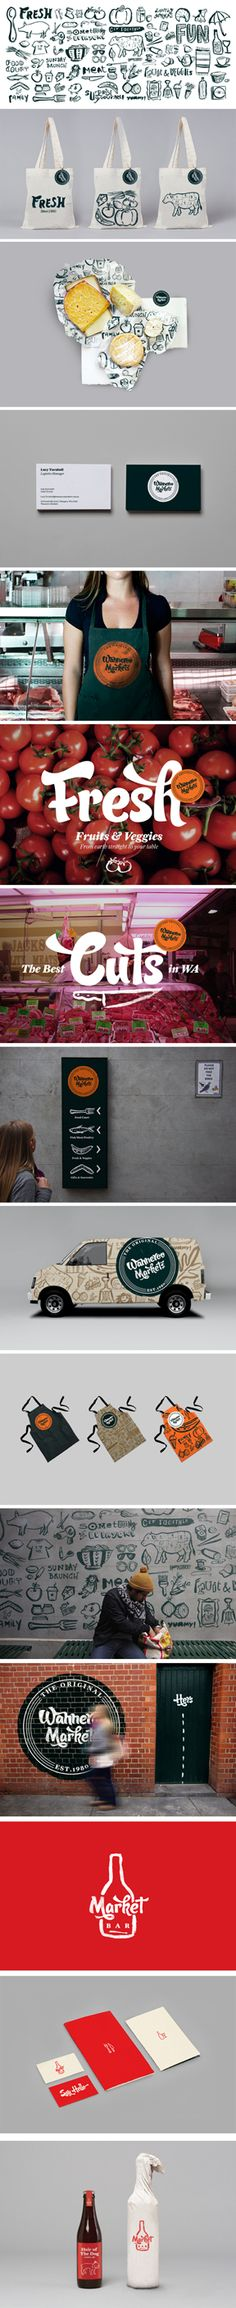 Let's go shopping at Waneroo Market #identity #packaging #branding PD